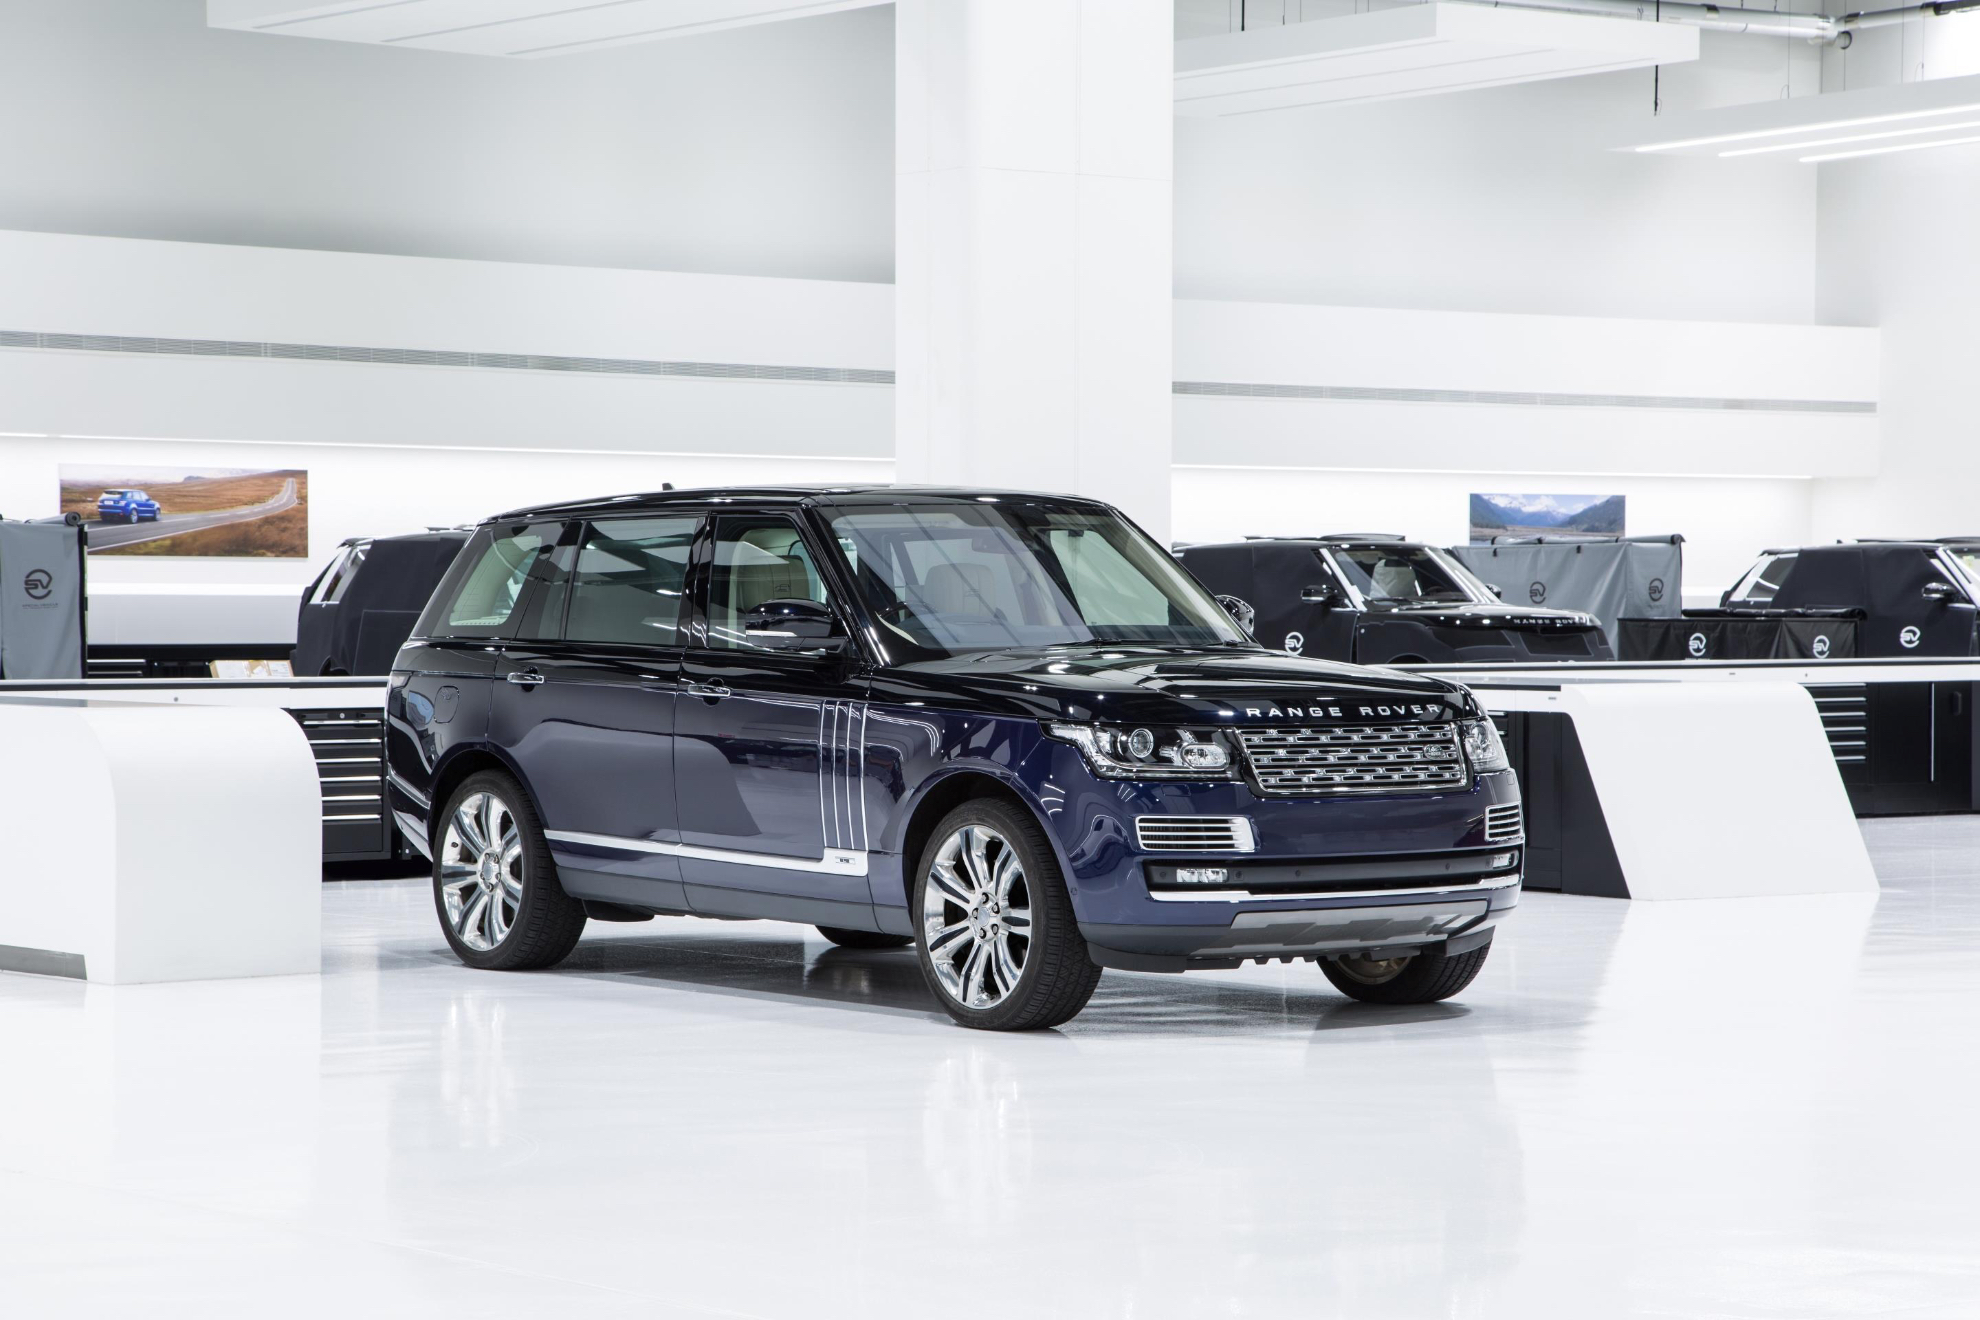 WELCOME TO JAGUAR LAND ROVER WEST CHESTER